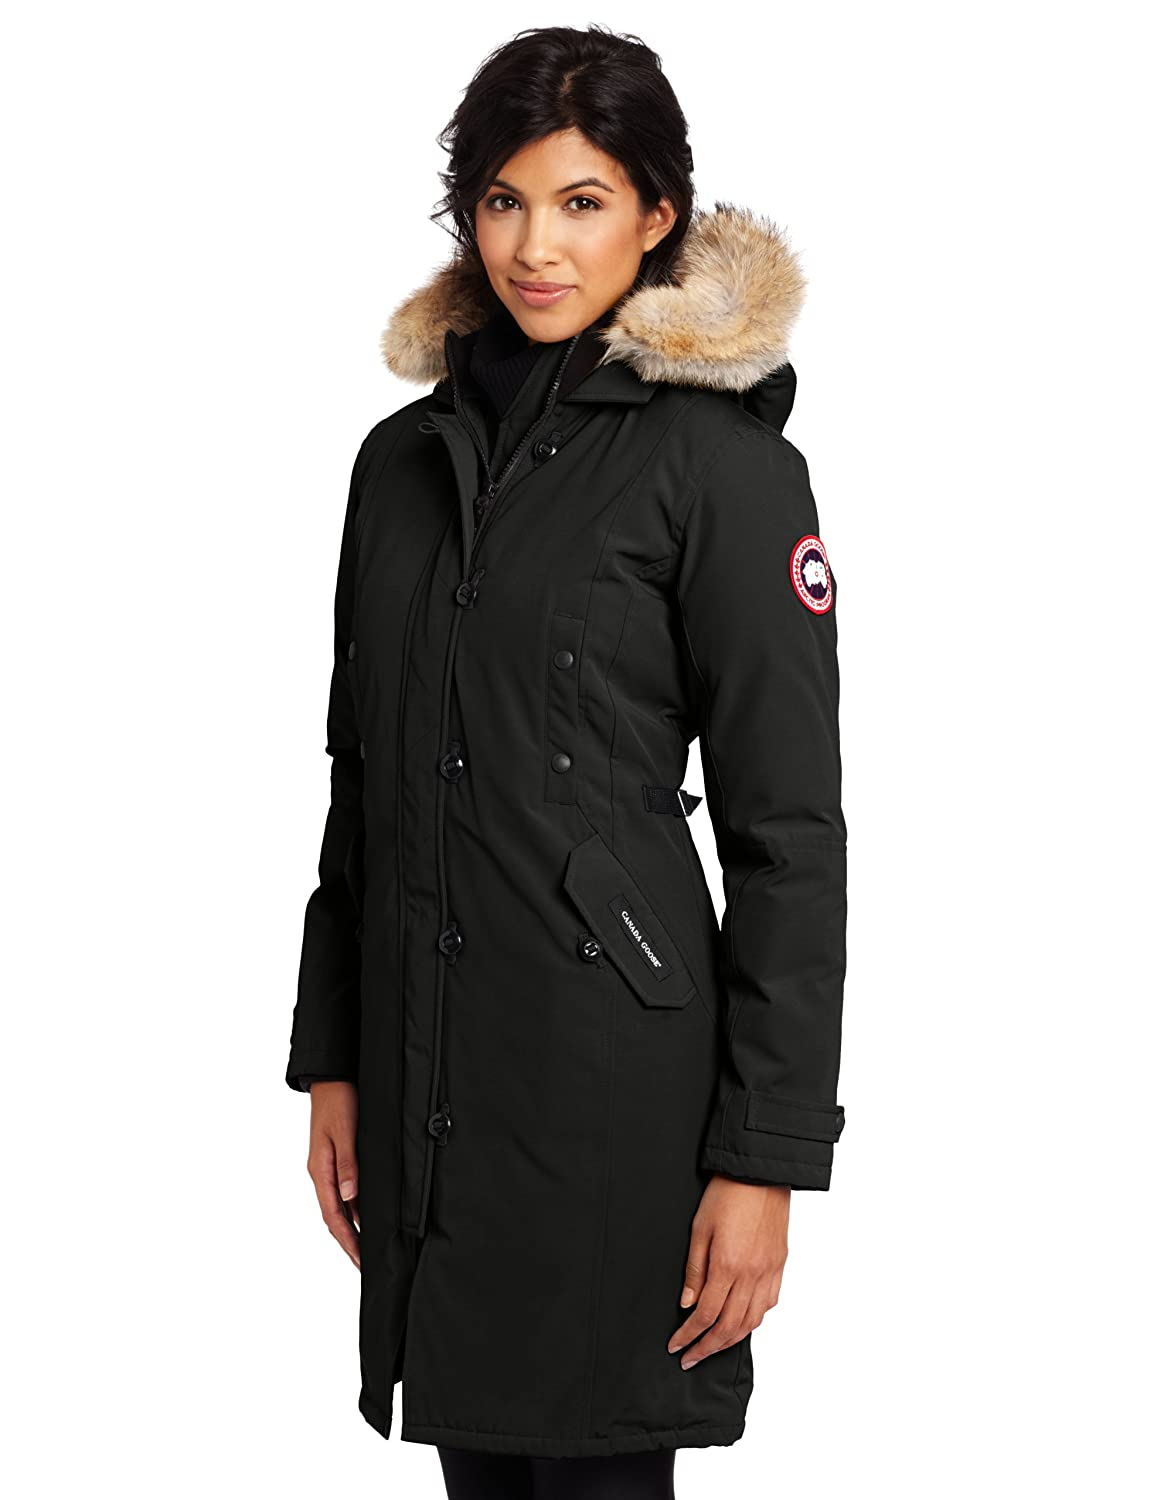 Discover the range of women's parkas from ASOS. Shop from a variety of parkas jackets and coats in a variety of colors and lengths today. your browser is not supported. COLLUSION Unisex puffer jacket in black. $ COLLUSION longline parka with removable faux fur hood. $ COLLUSION Unisex reversible camo parka jacket. $